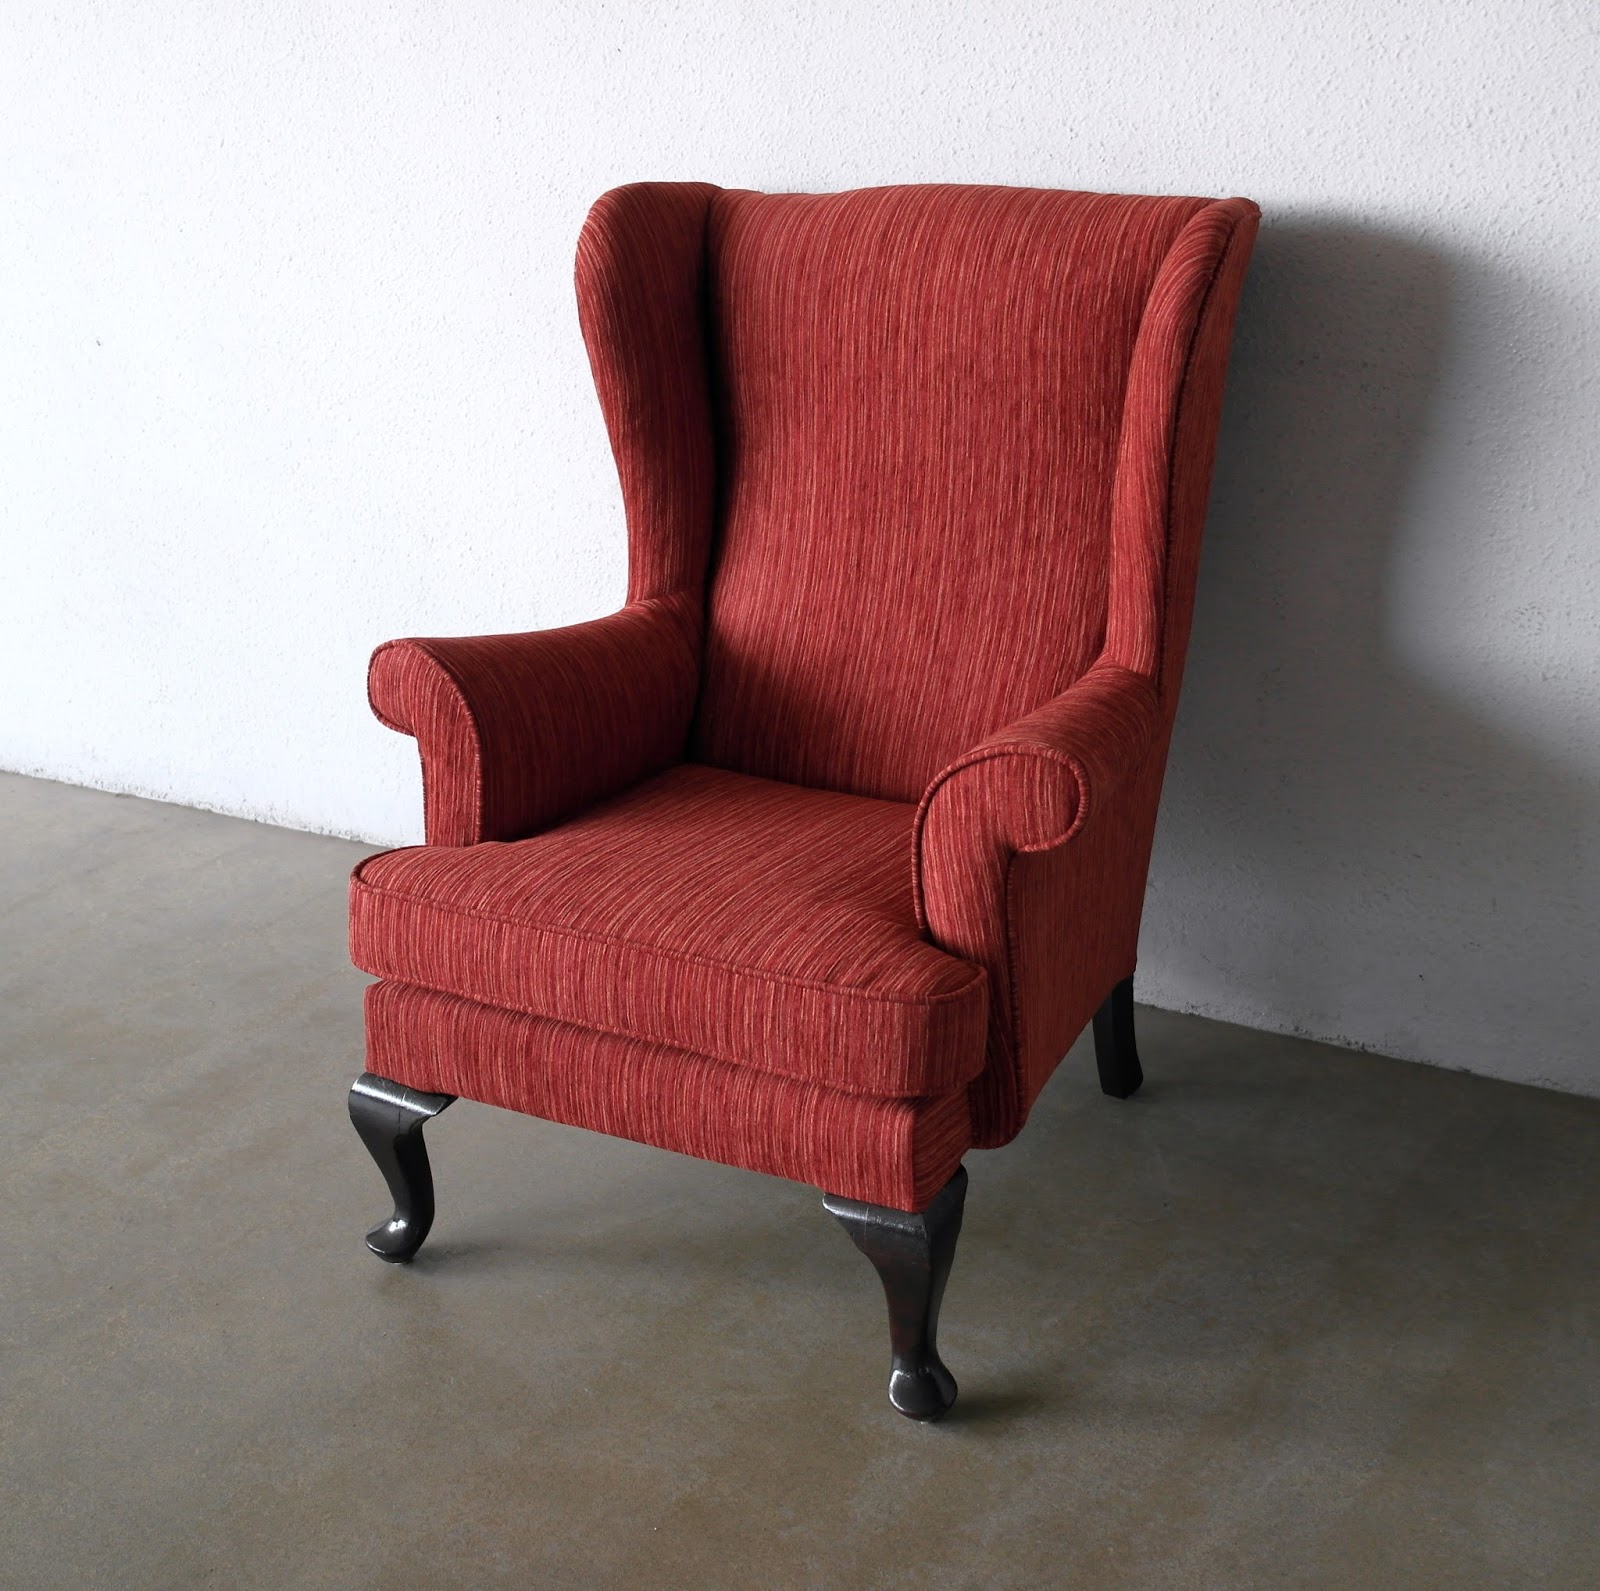 jerome's swivel chairs leckey activity chair reproducing some of the best midcentury furniture while